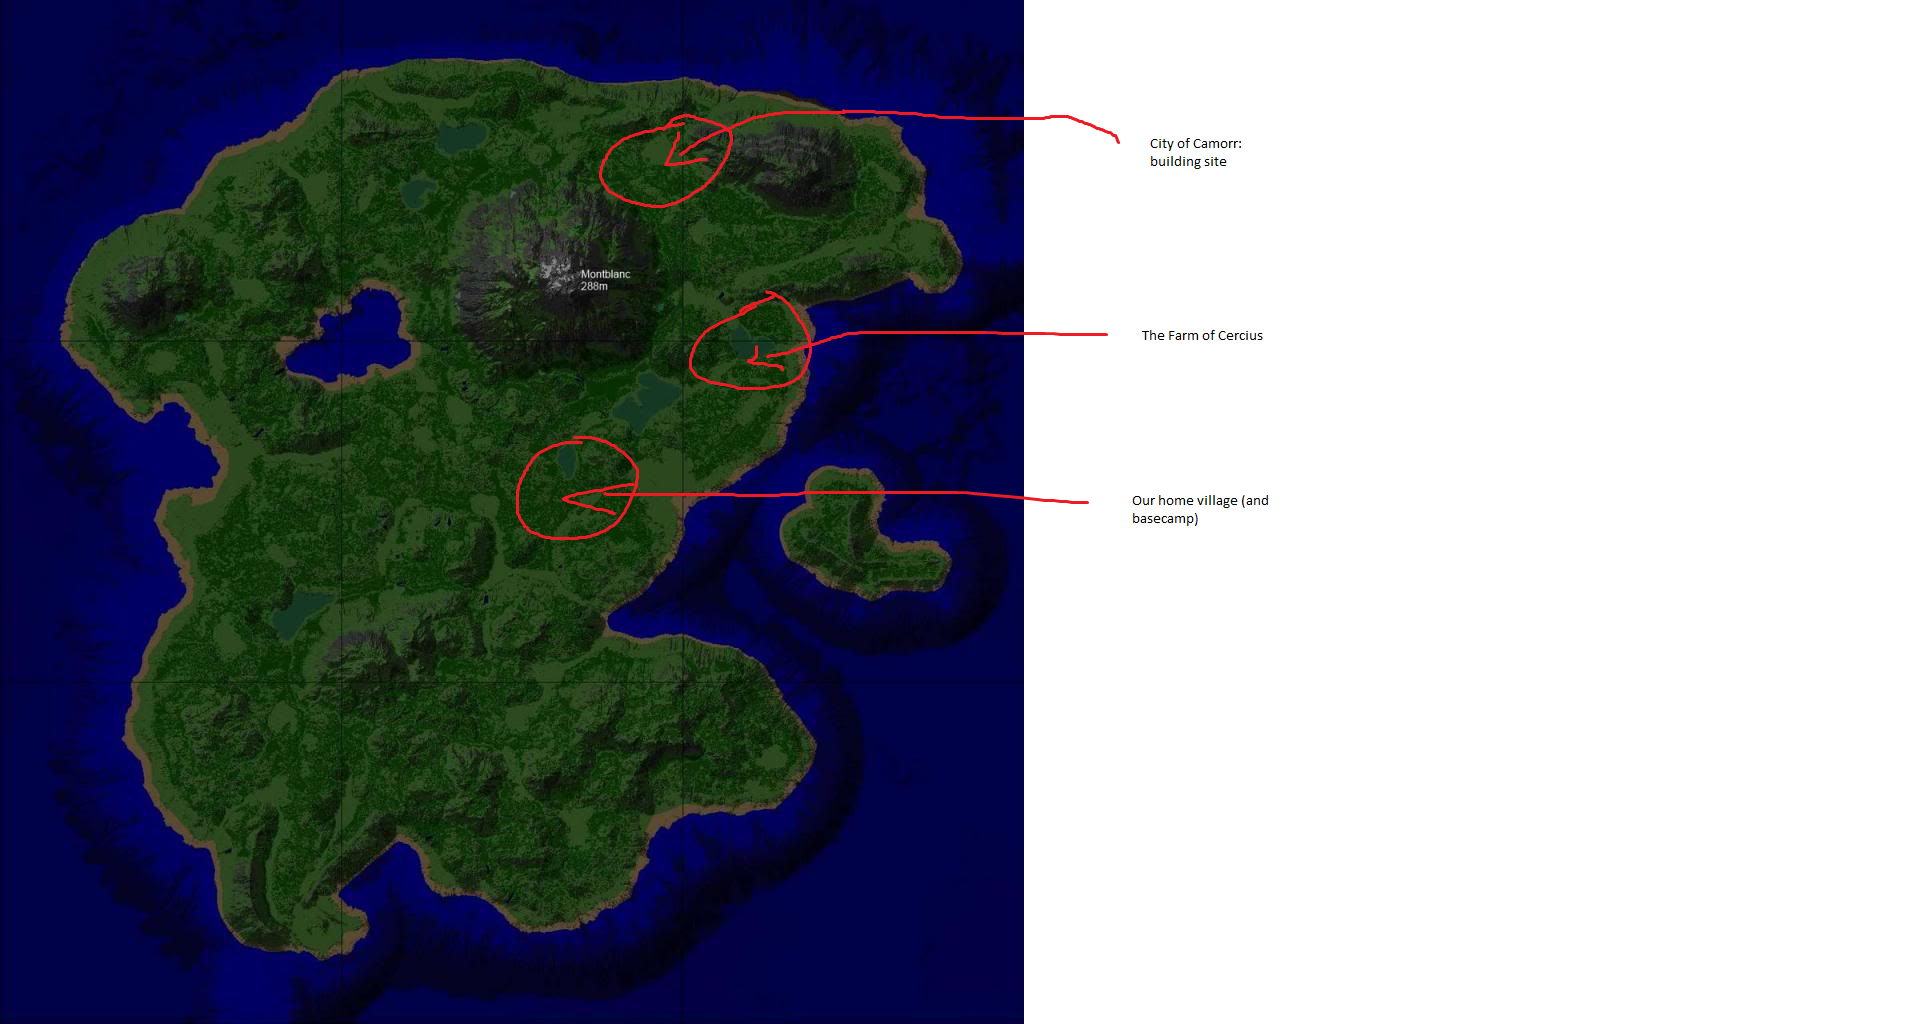 Map of the Duchy of Camorr server